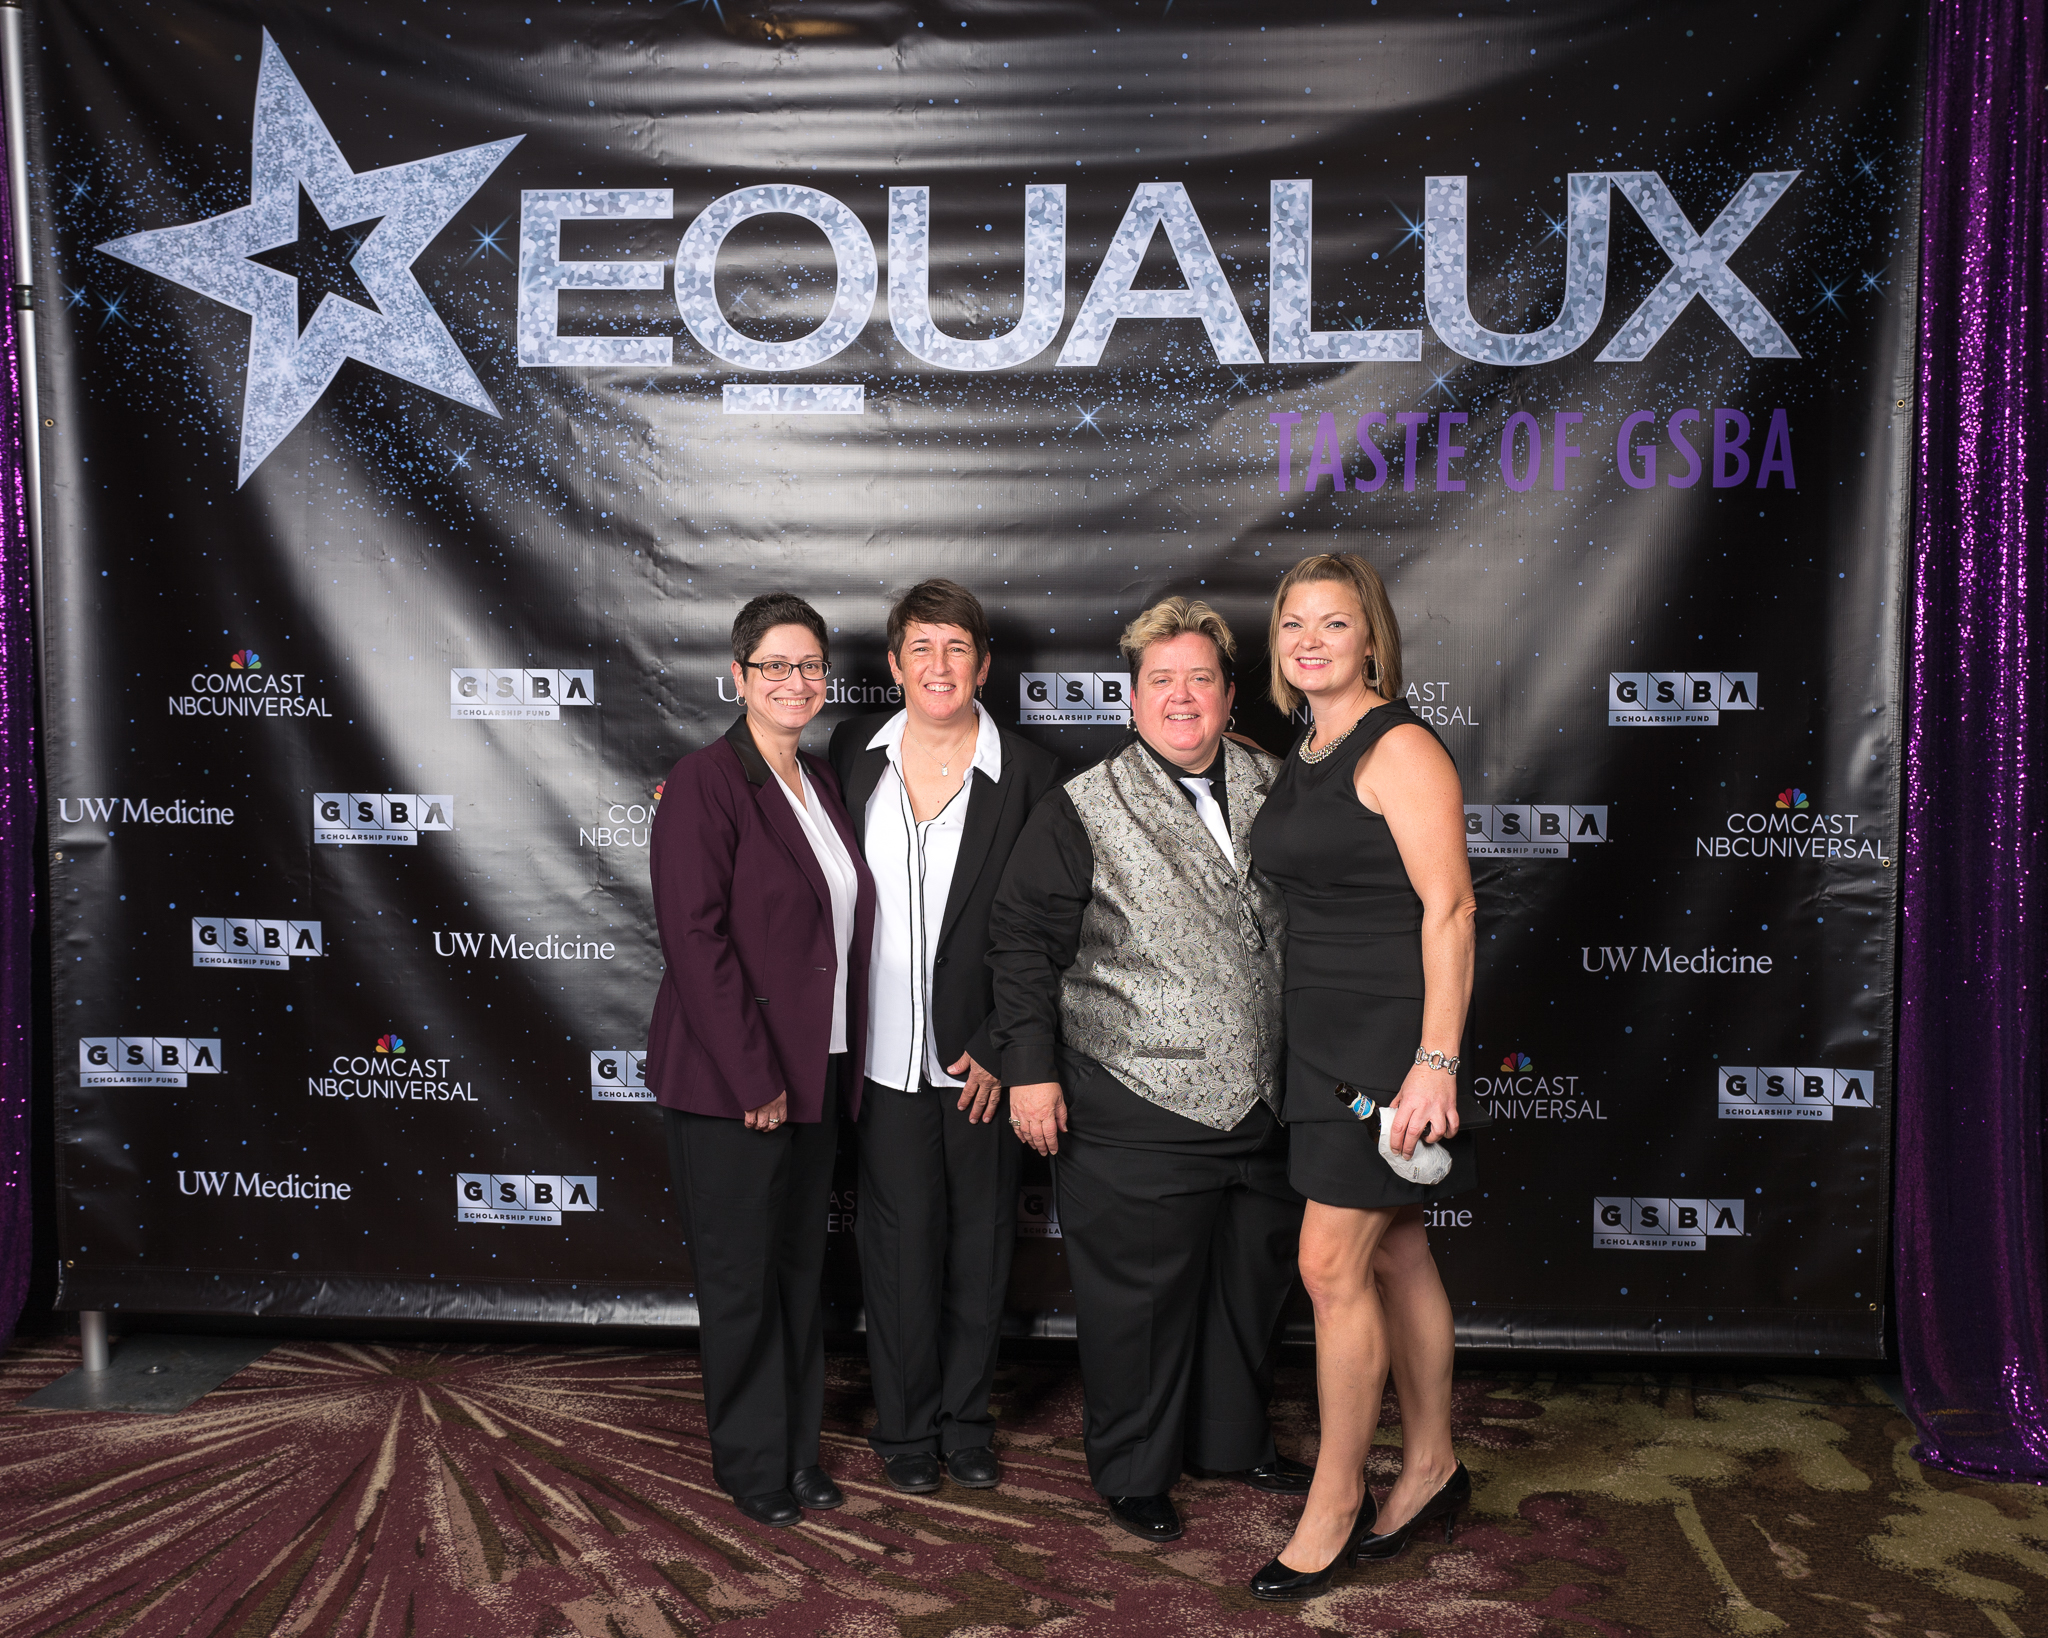 111718_GSBA EQUALUX at The Westin Seattle (Credit- Nate Gowdy)-65.jpg